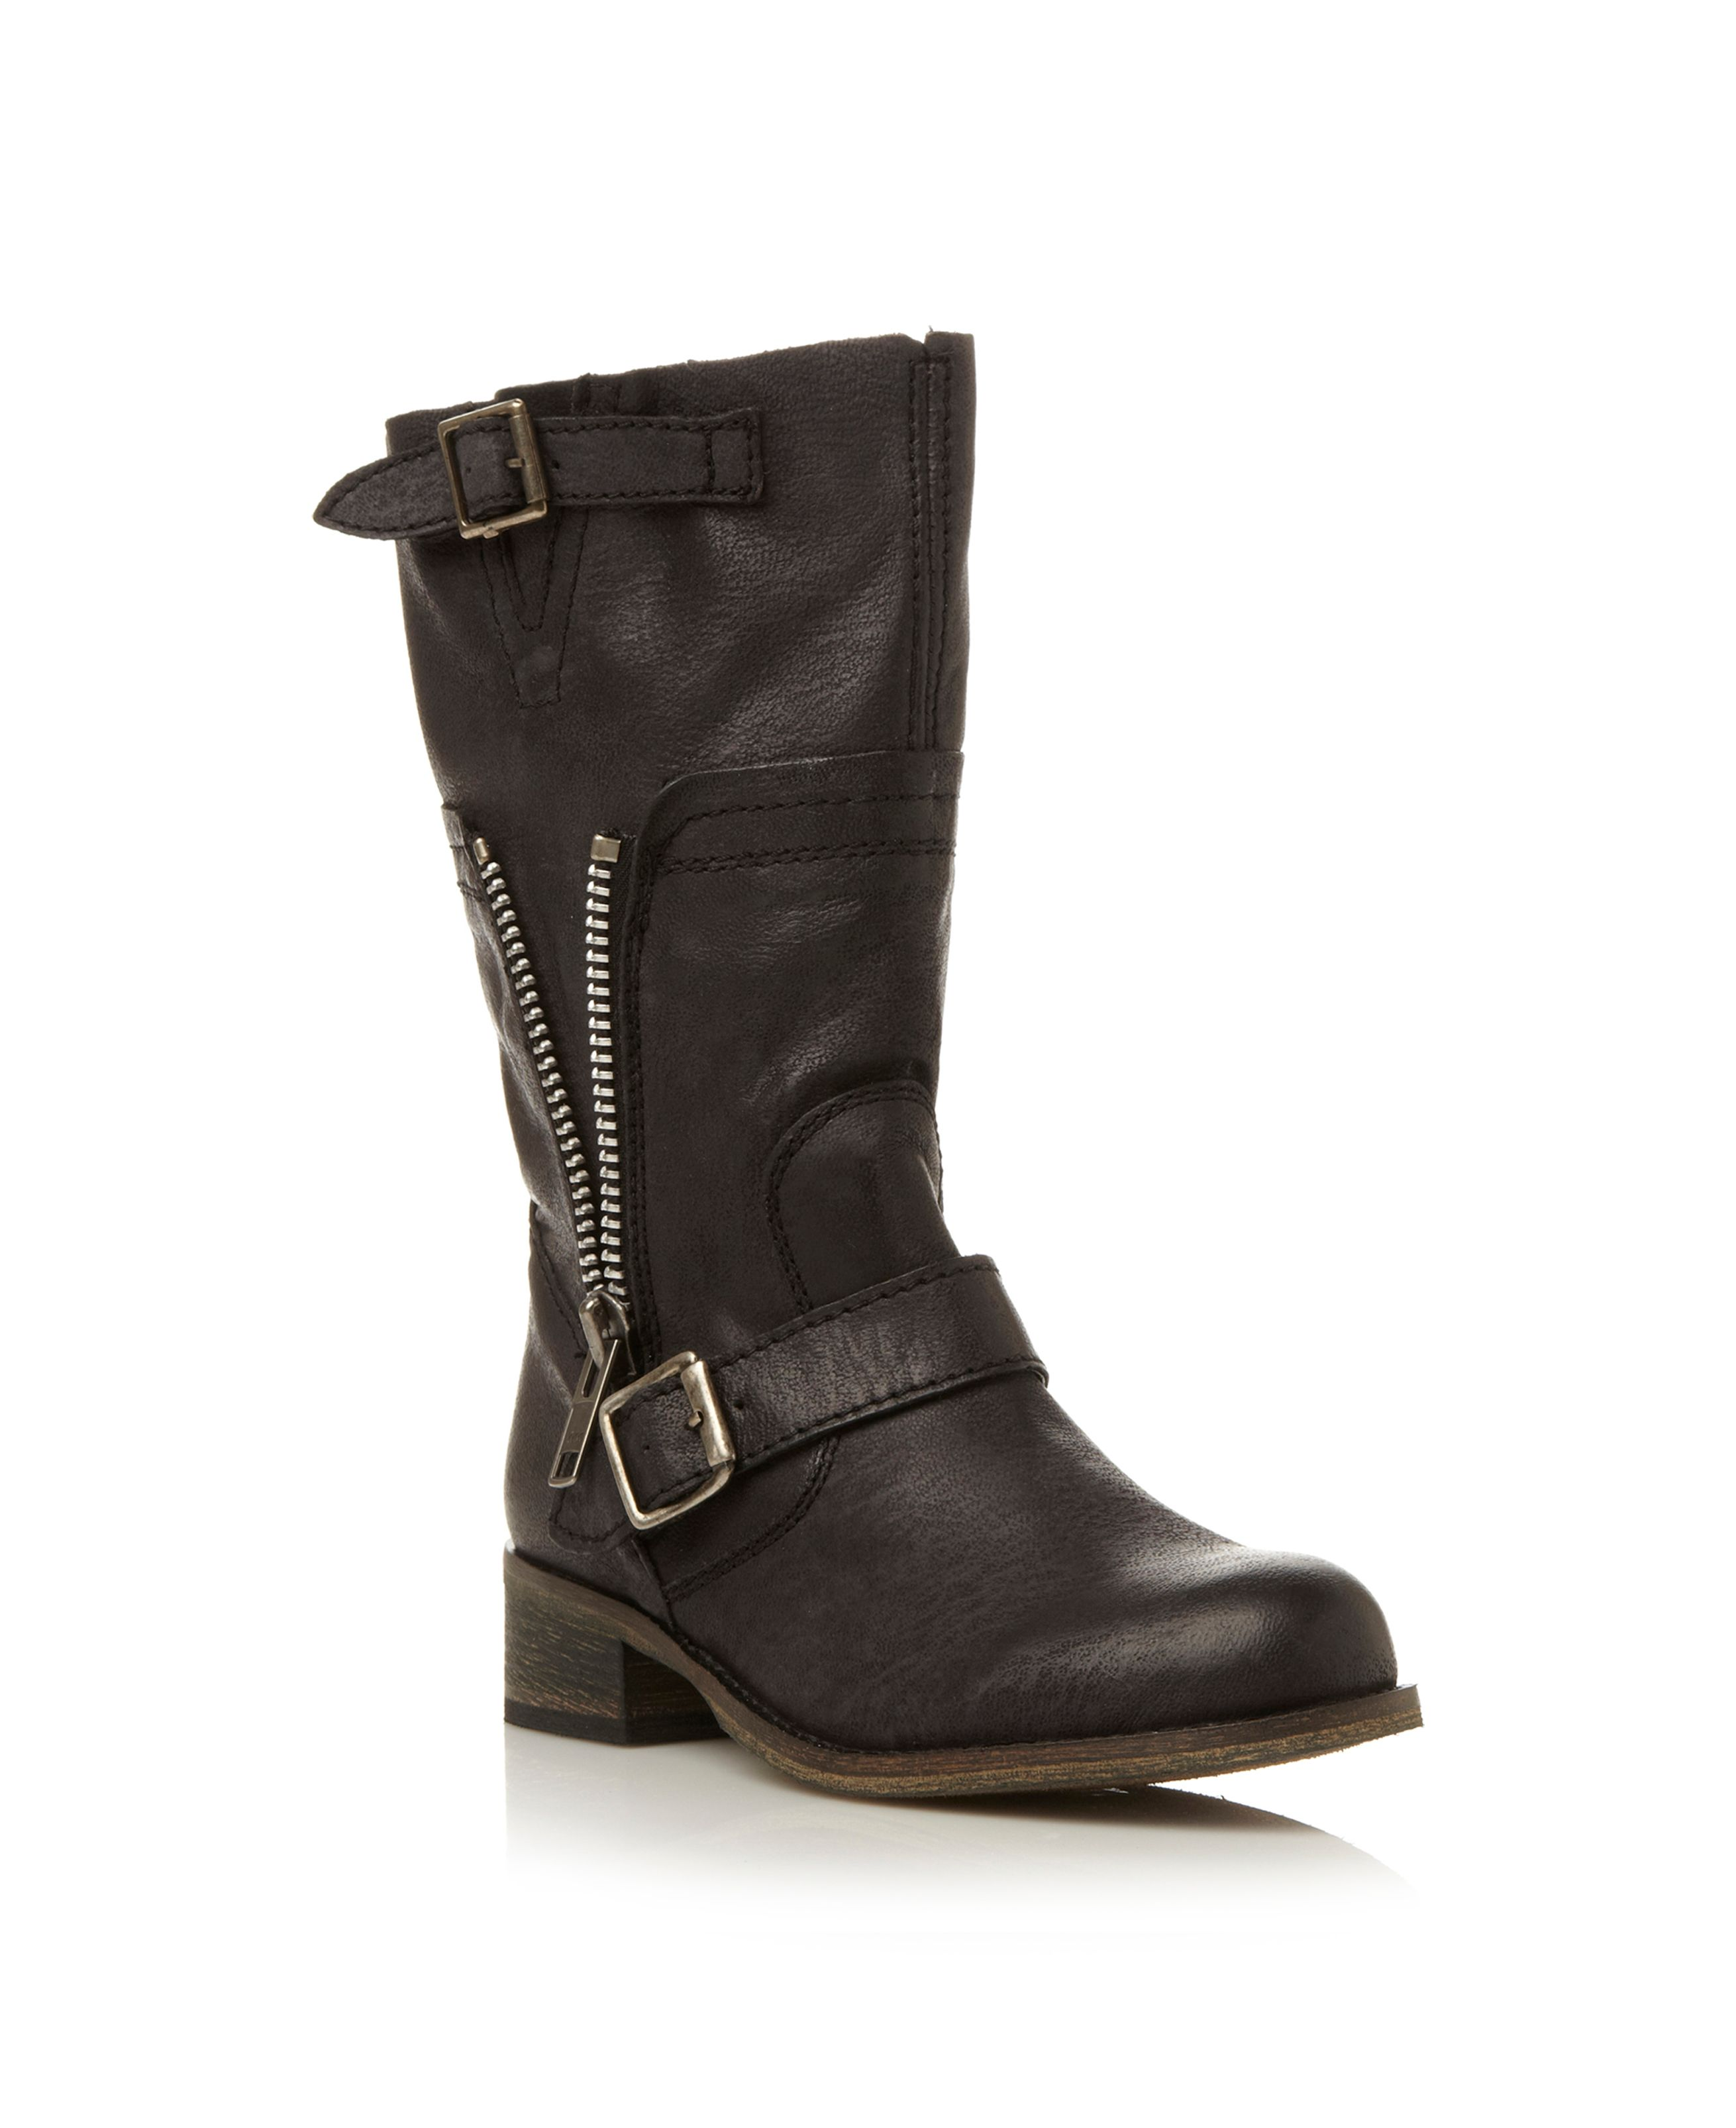 Deziary zip side calf boots